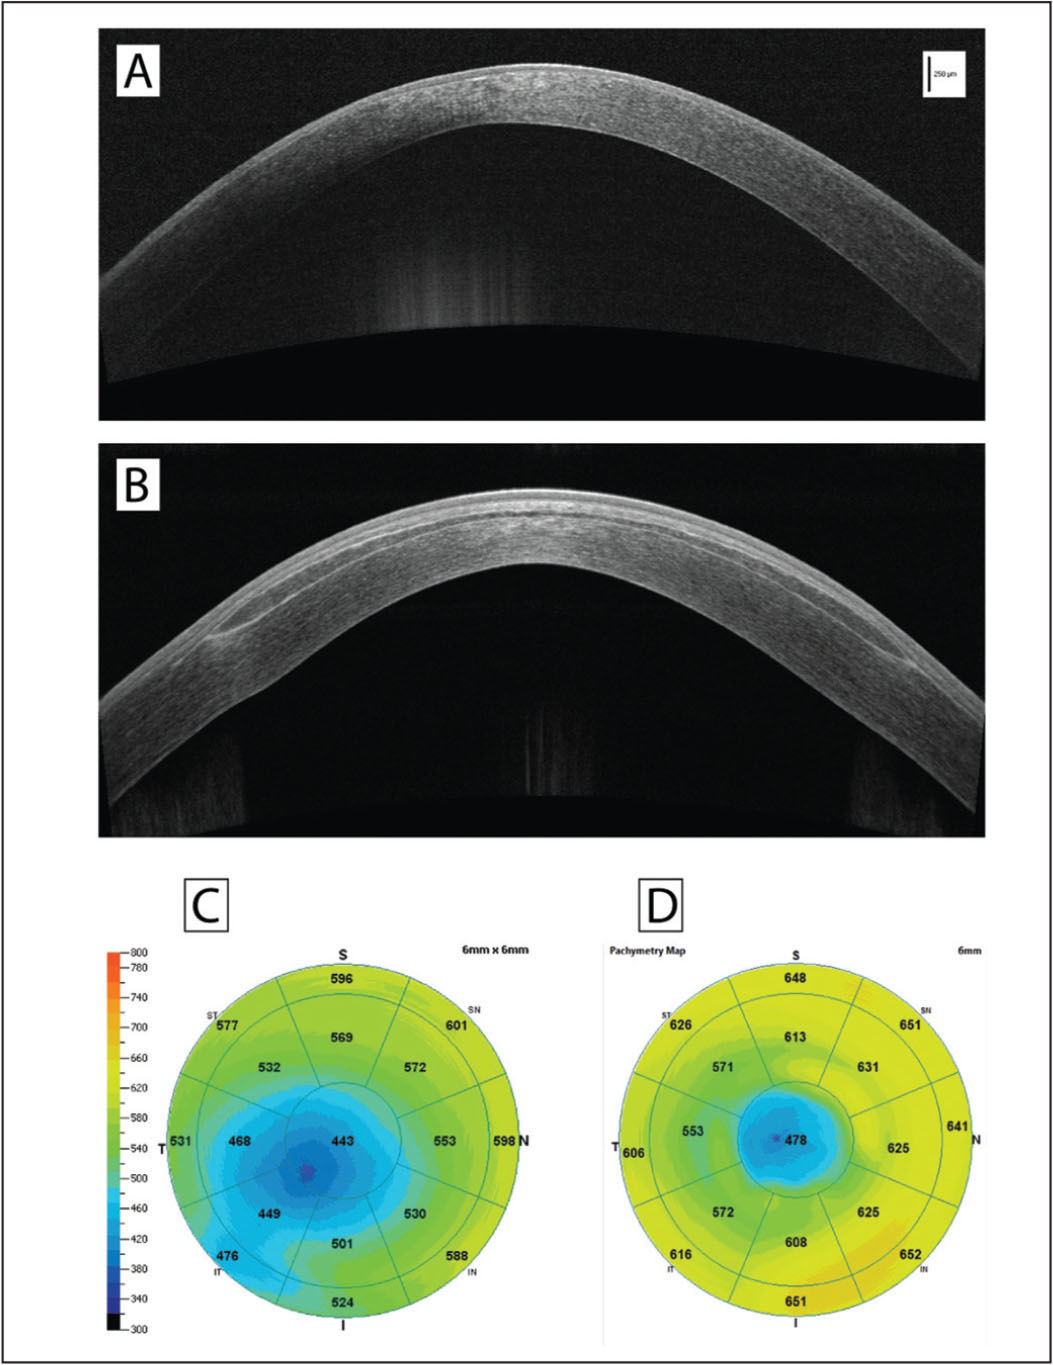 High-resolution anterior segment optical coherence tomography (OCT) scans of the recipient cornea (A) before and (B) 6 months after surgery and (C and D) corresponding OCT pachymetry maps. The intrastromal lenticule appears well centered and integrated with its profile identifiable within the recipient stroma. Lenticule interfaces show moderate reflectivity in the central zone, whereas the stromal component of the lenticule presents a lower reflectivity compared to the surrounding recipient stroma. Pachymetry maps show a corneal thickness increase in both central corneal cone apex and mid-peripheral cornea after surgery, consistent with the lenticule morphology.